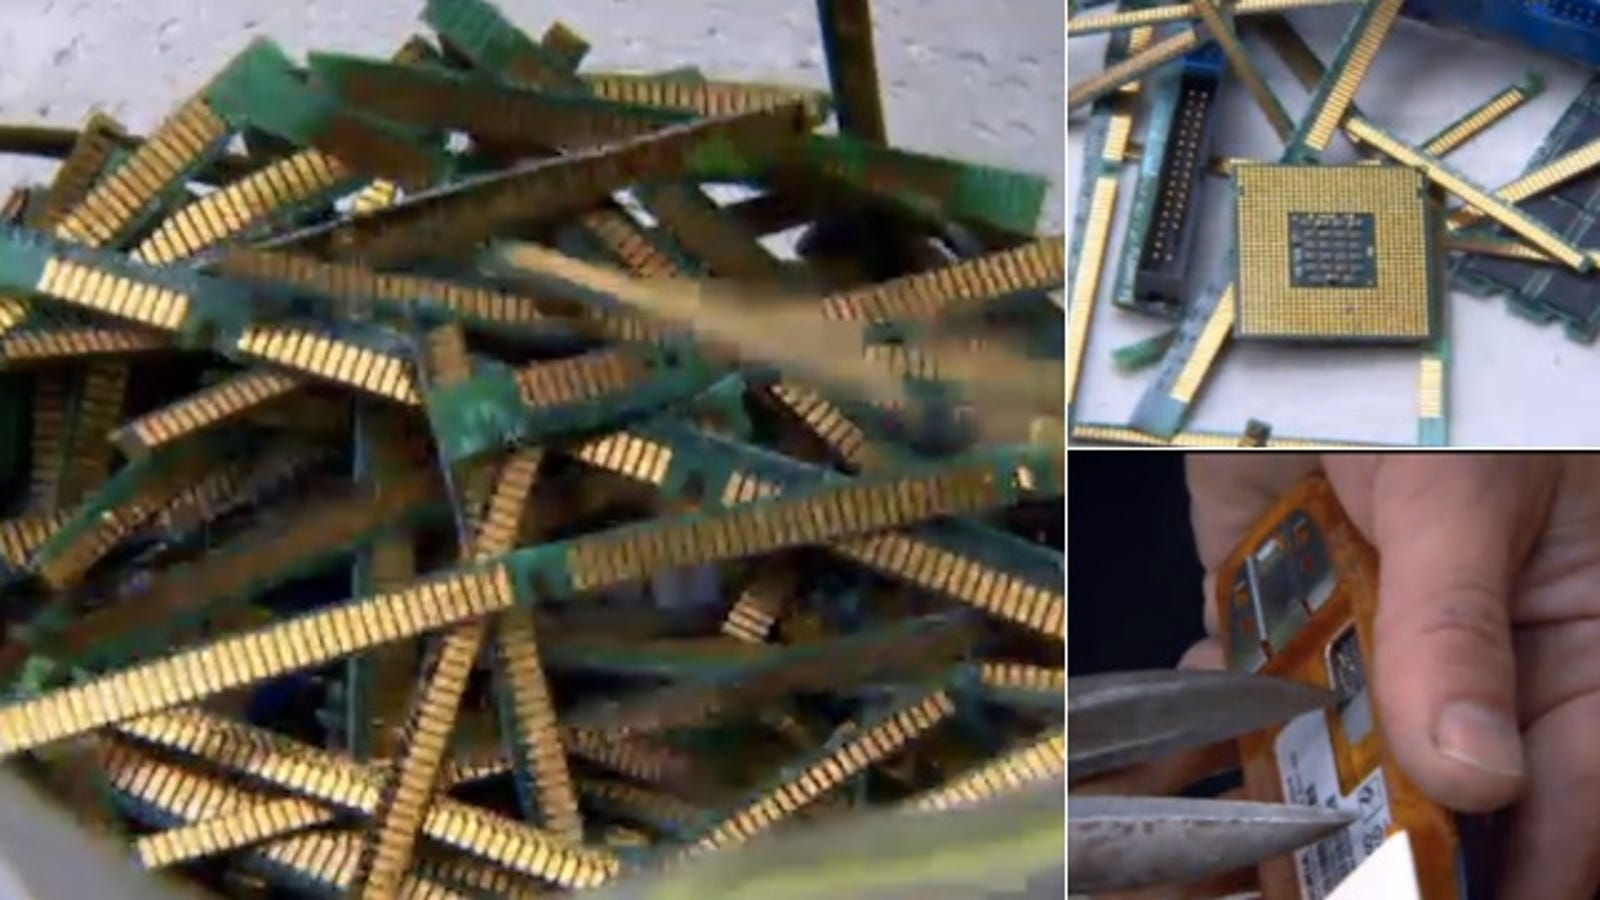 Heres How To Rip Apart A Computer And Melt The Circuit Boards For Scrap Gold Simple Recovery From Board Fingers So You Can Survive Next Financial Apocalypse